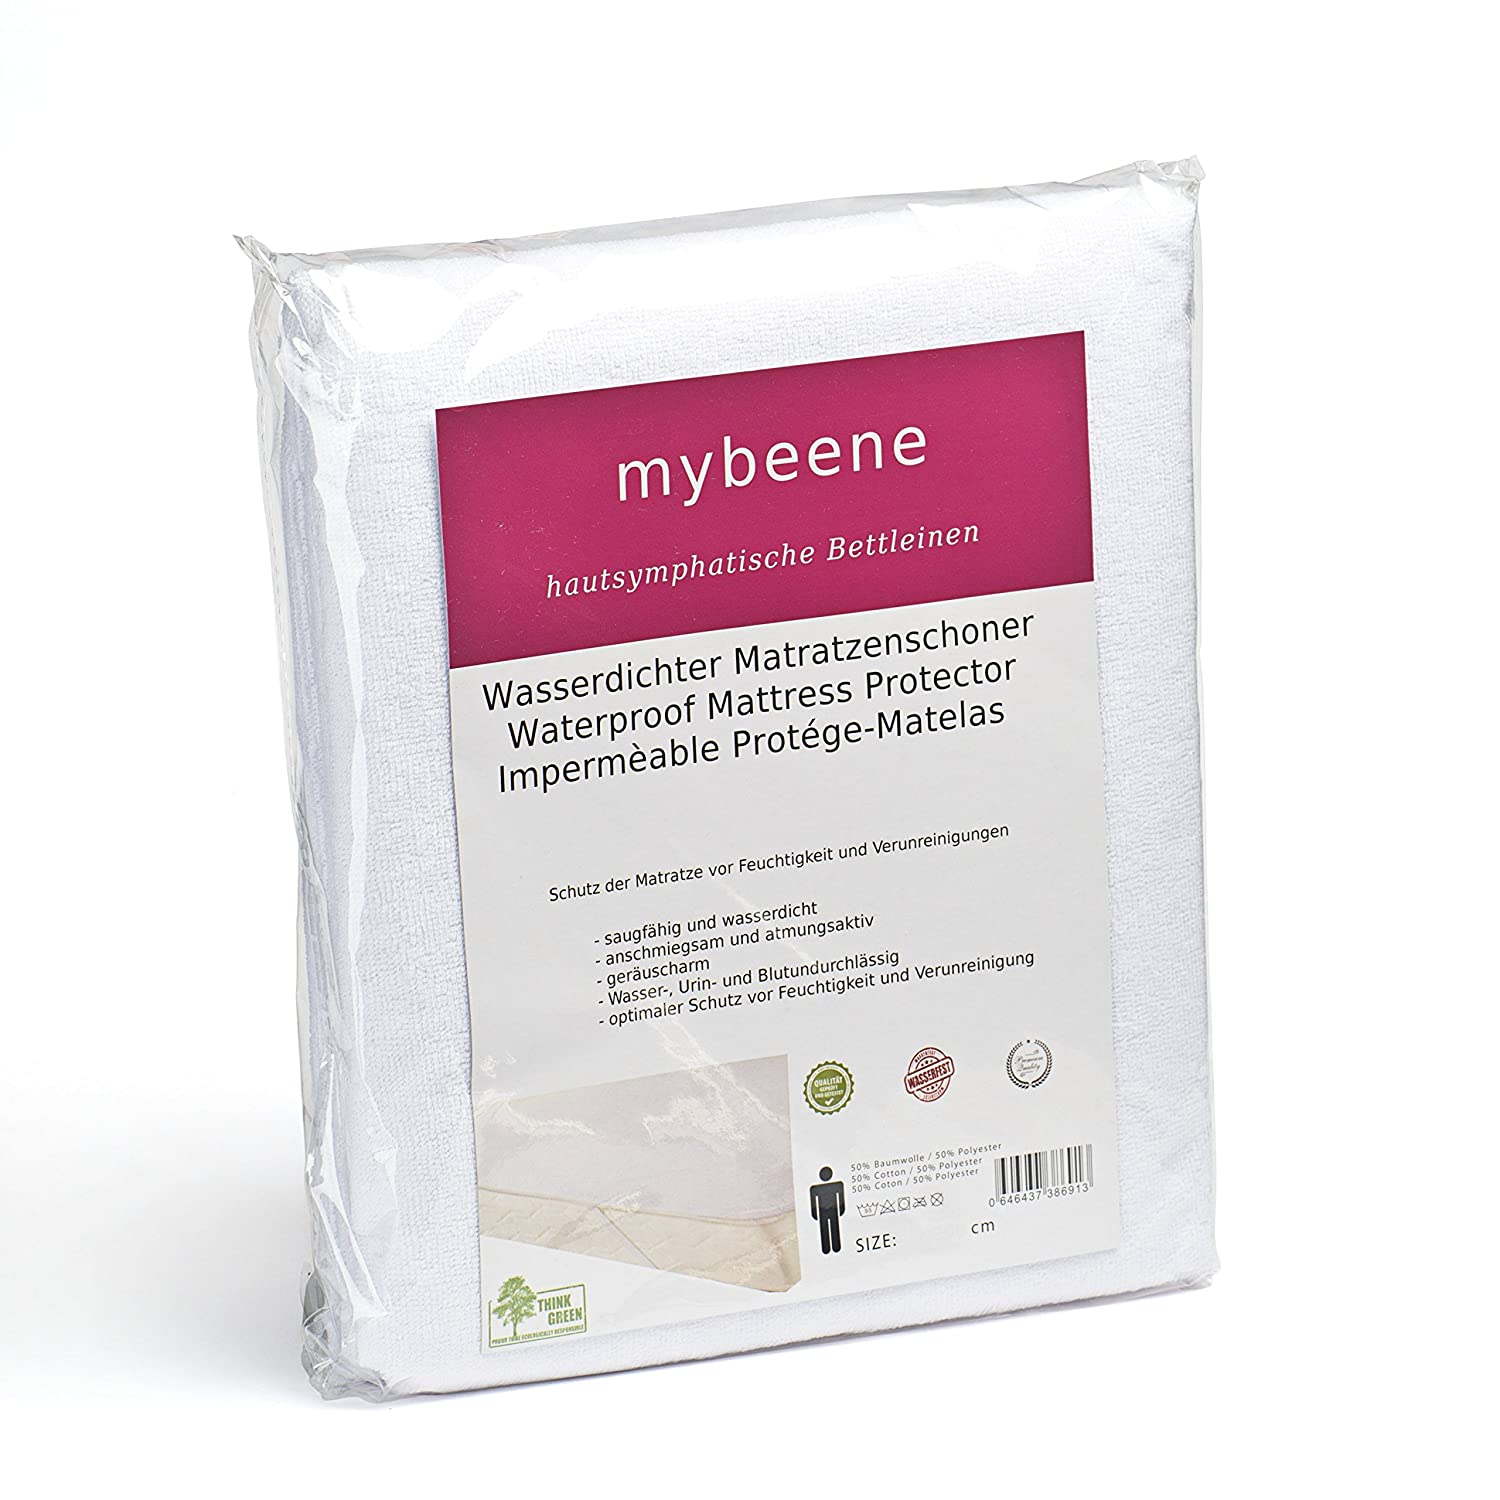 Mybeene Waterproof Incontinence Mattress Protector 60x120